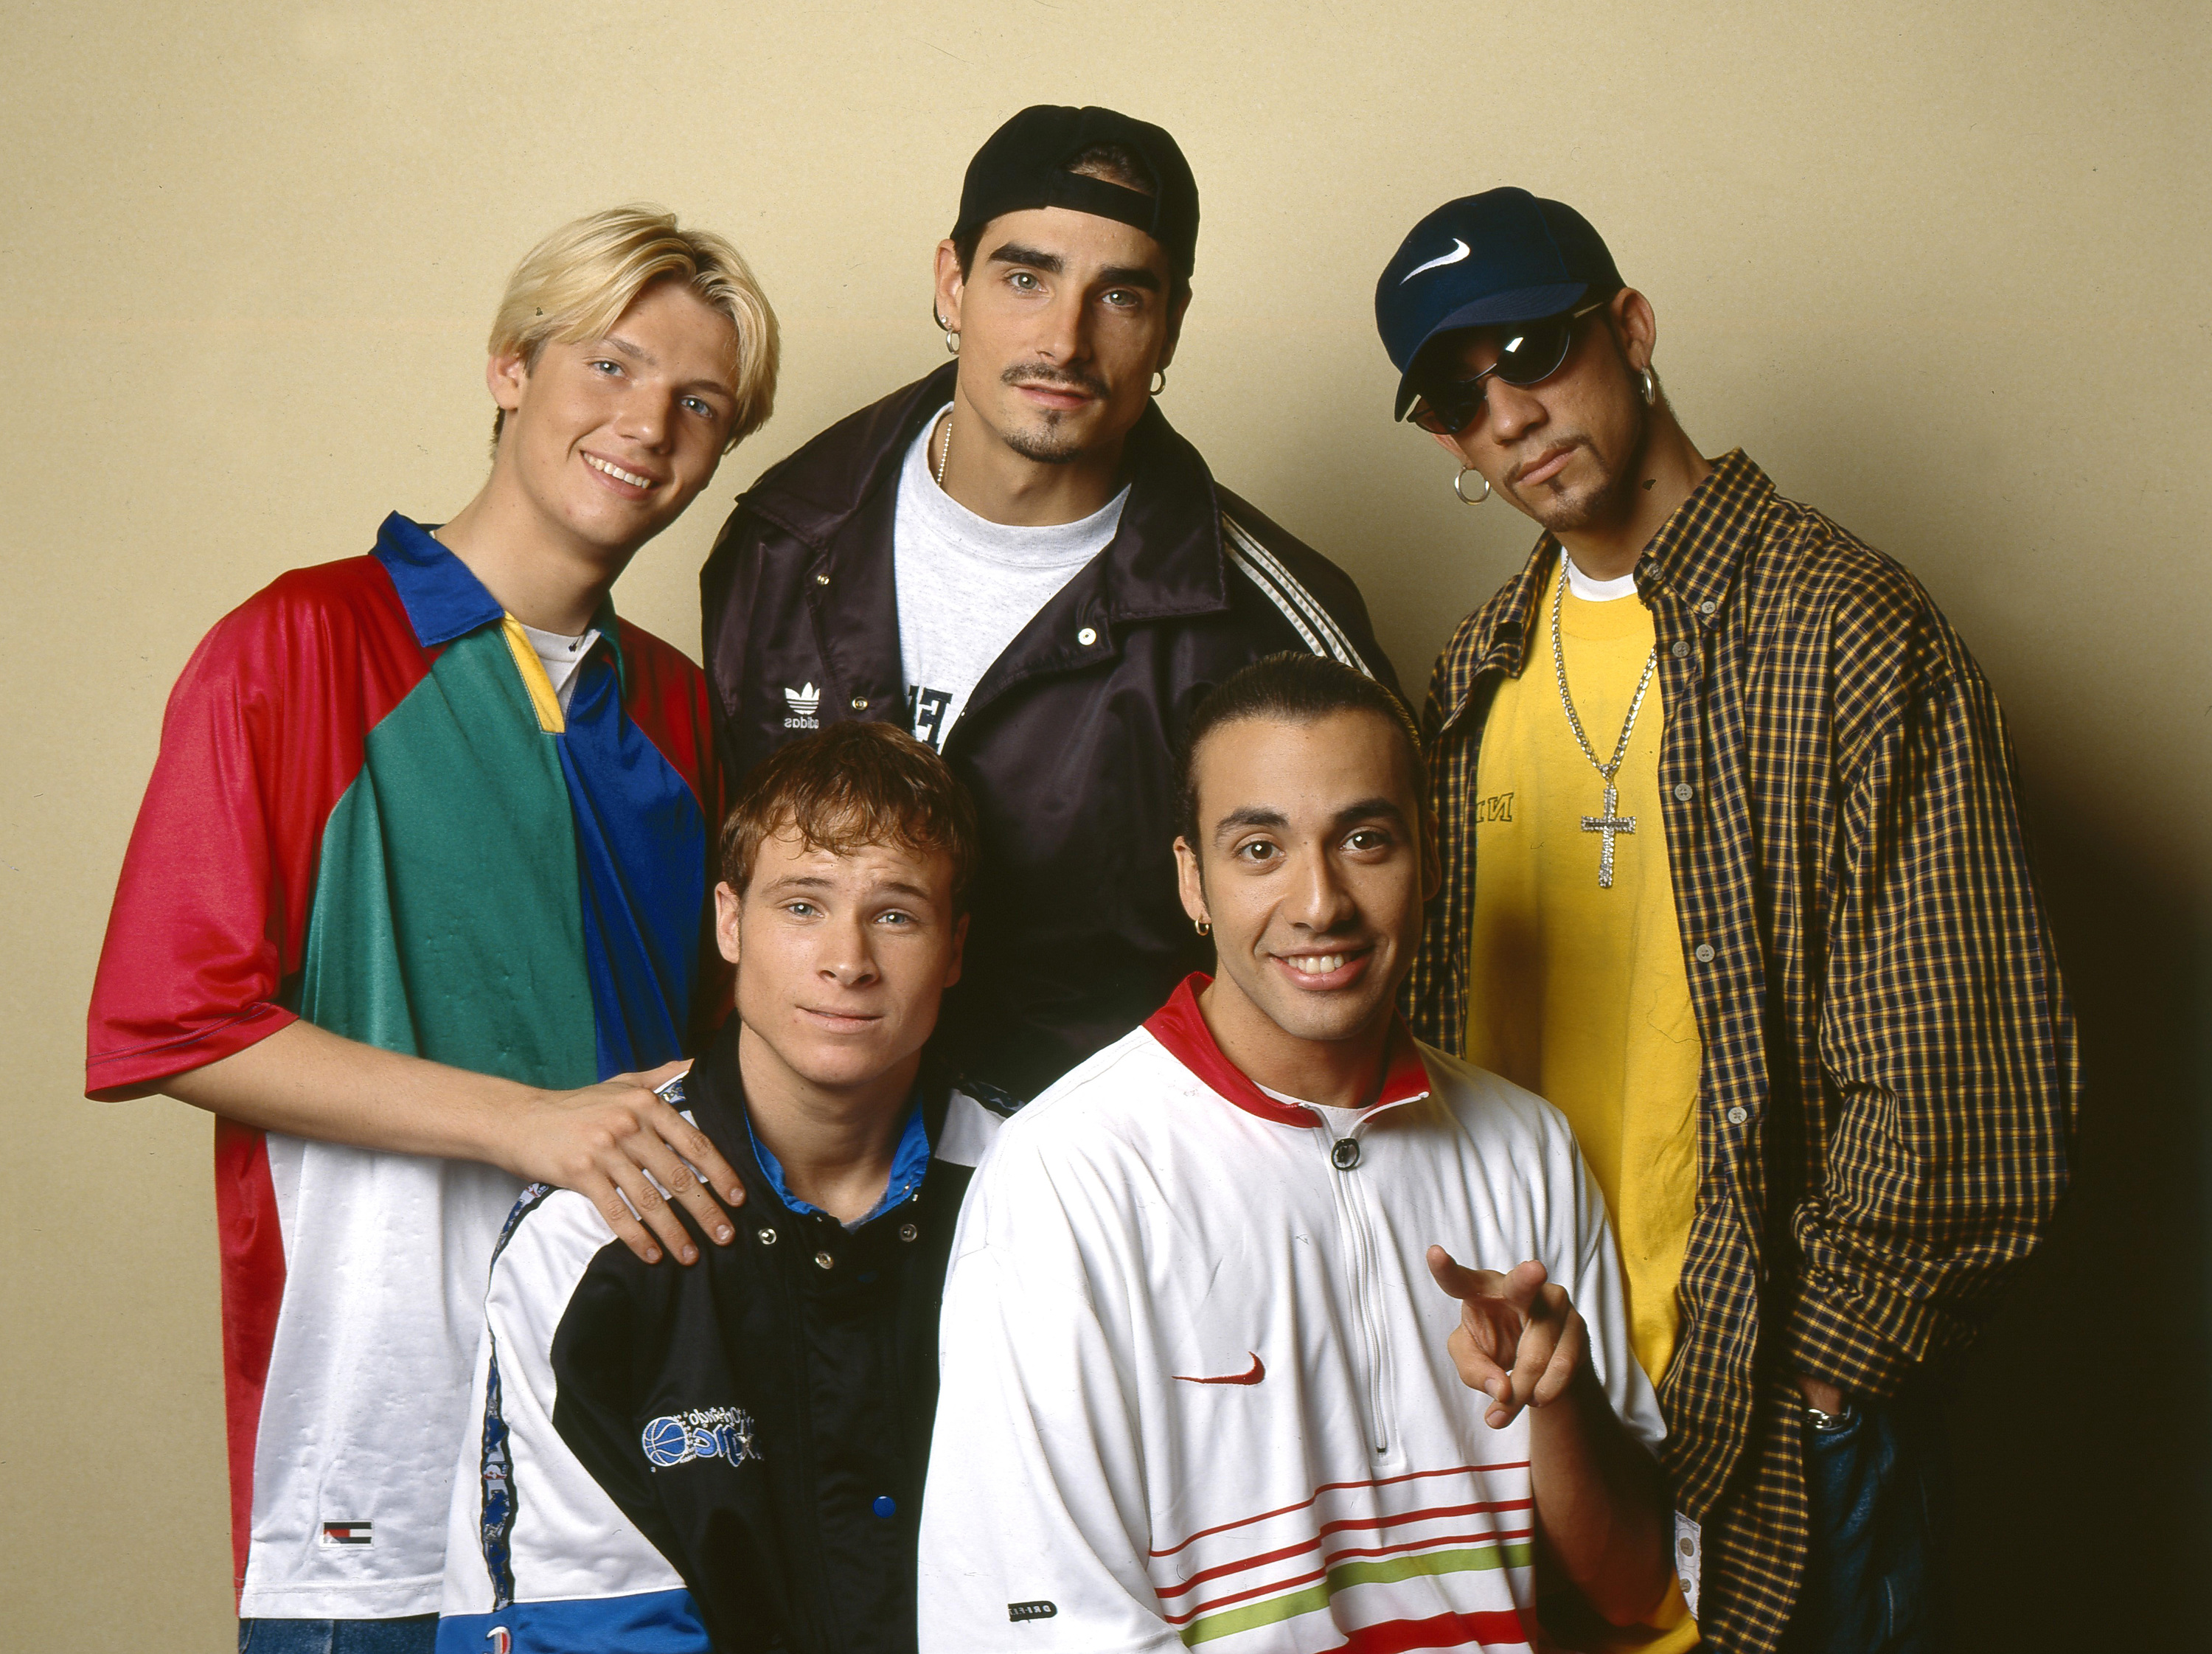 The Backstreet Boys are playing outside Radio City next week